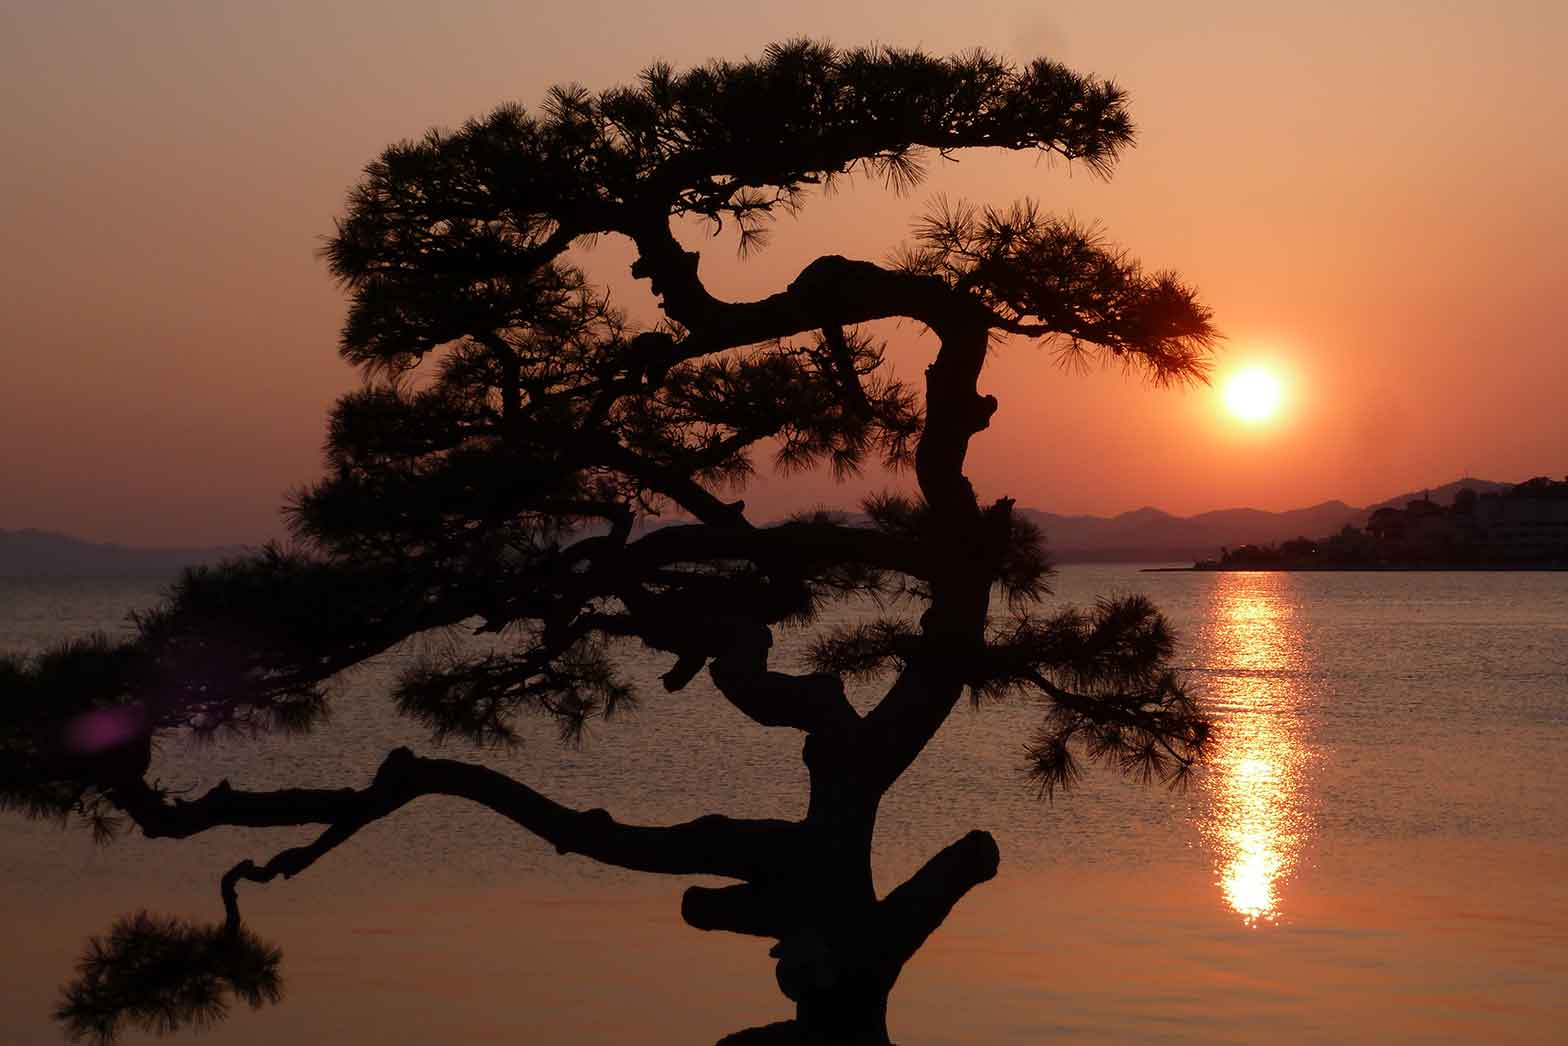 Sunset in Matsue